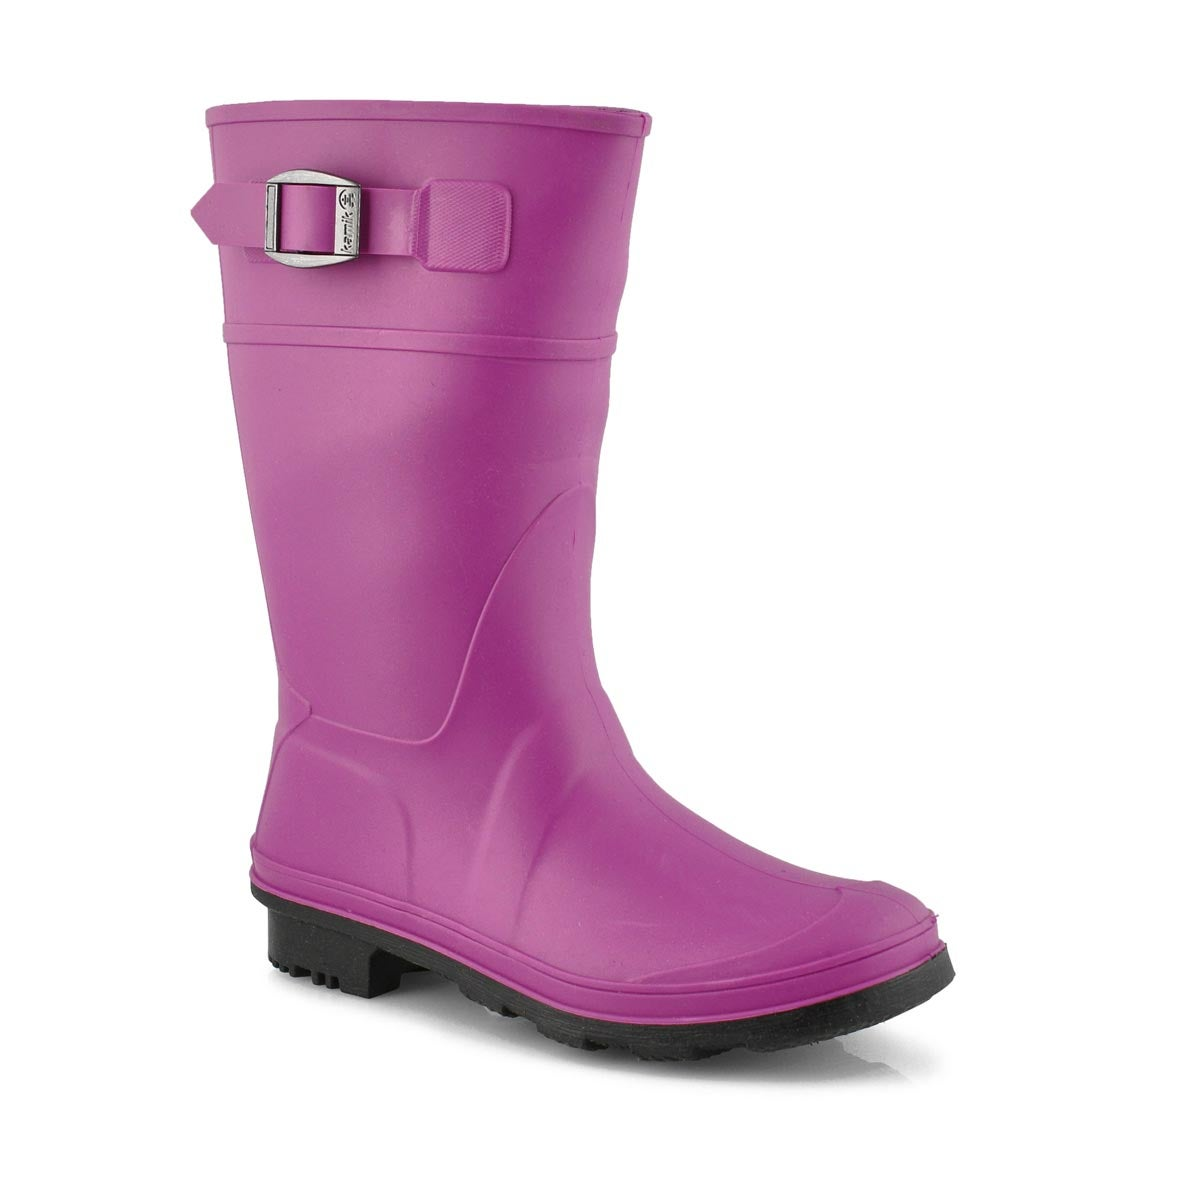 Girls' RAINDROPS viola waterproof rain boots